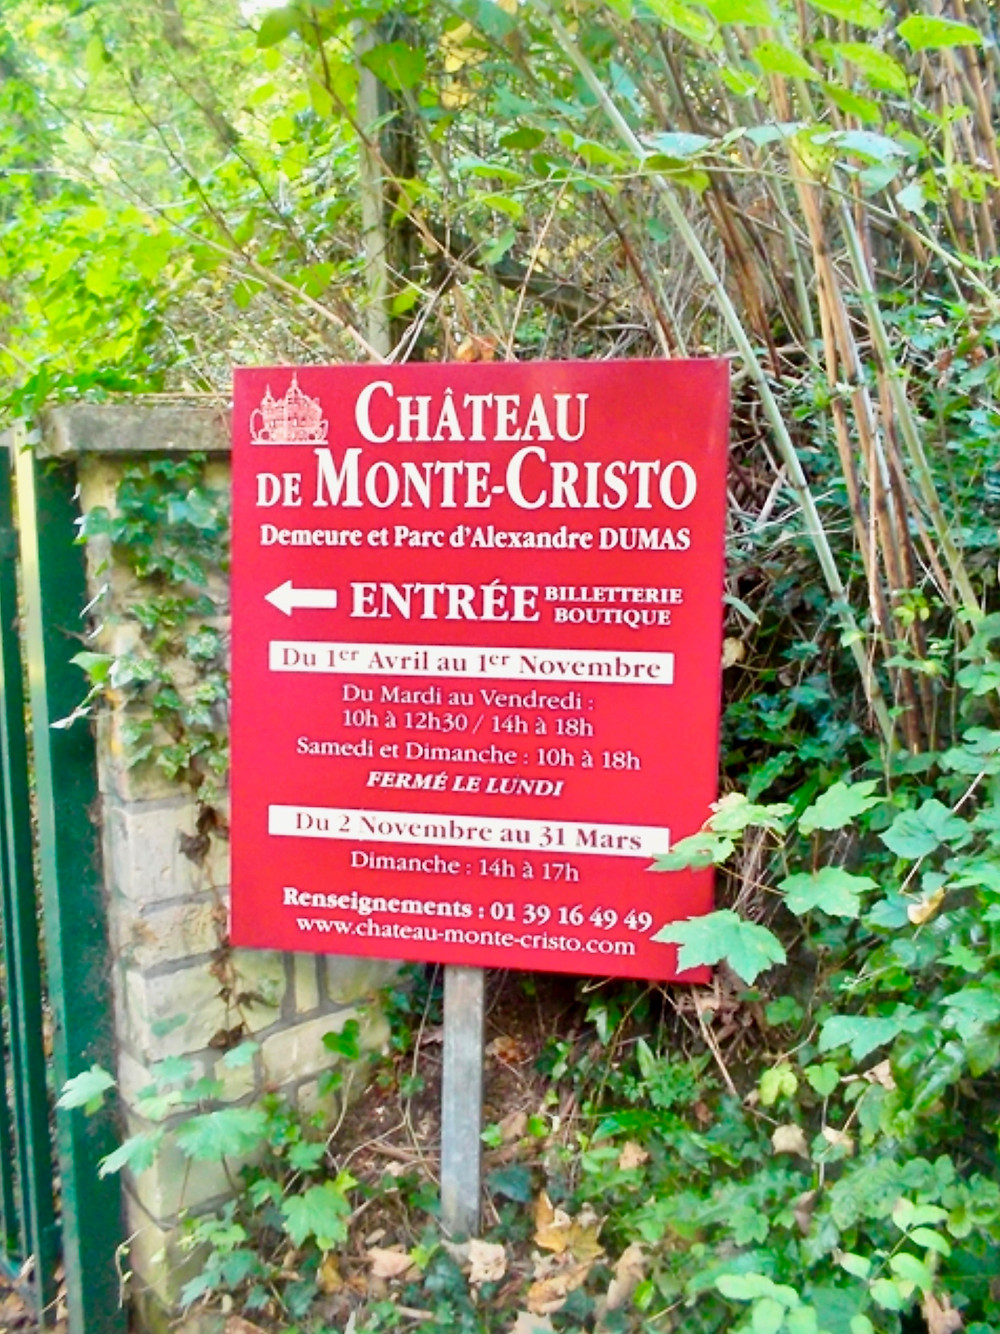 sign pointing the say to the Chateau de Monte-Cristo